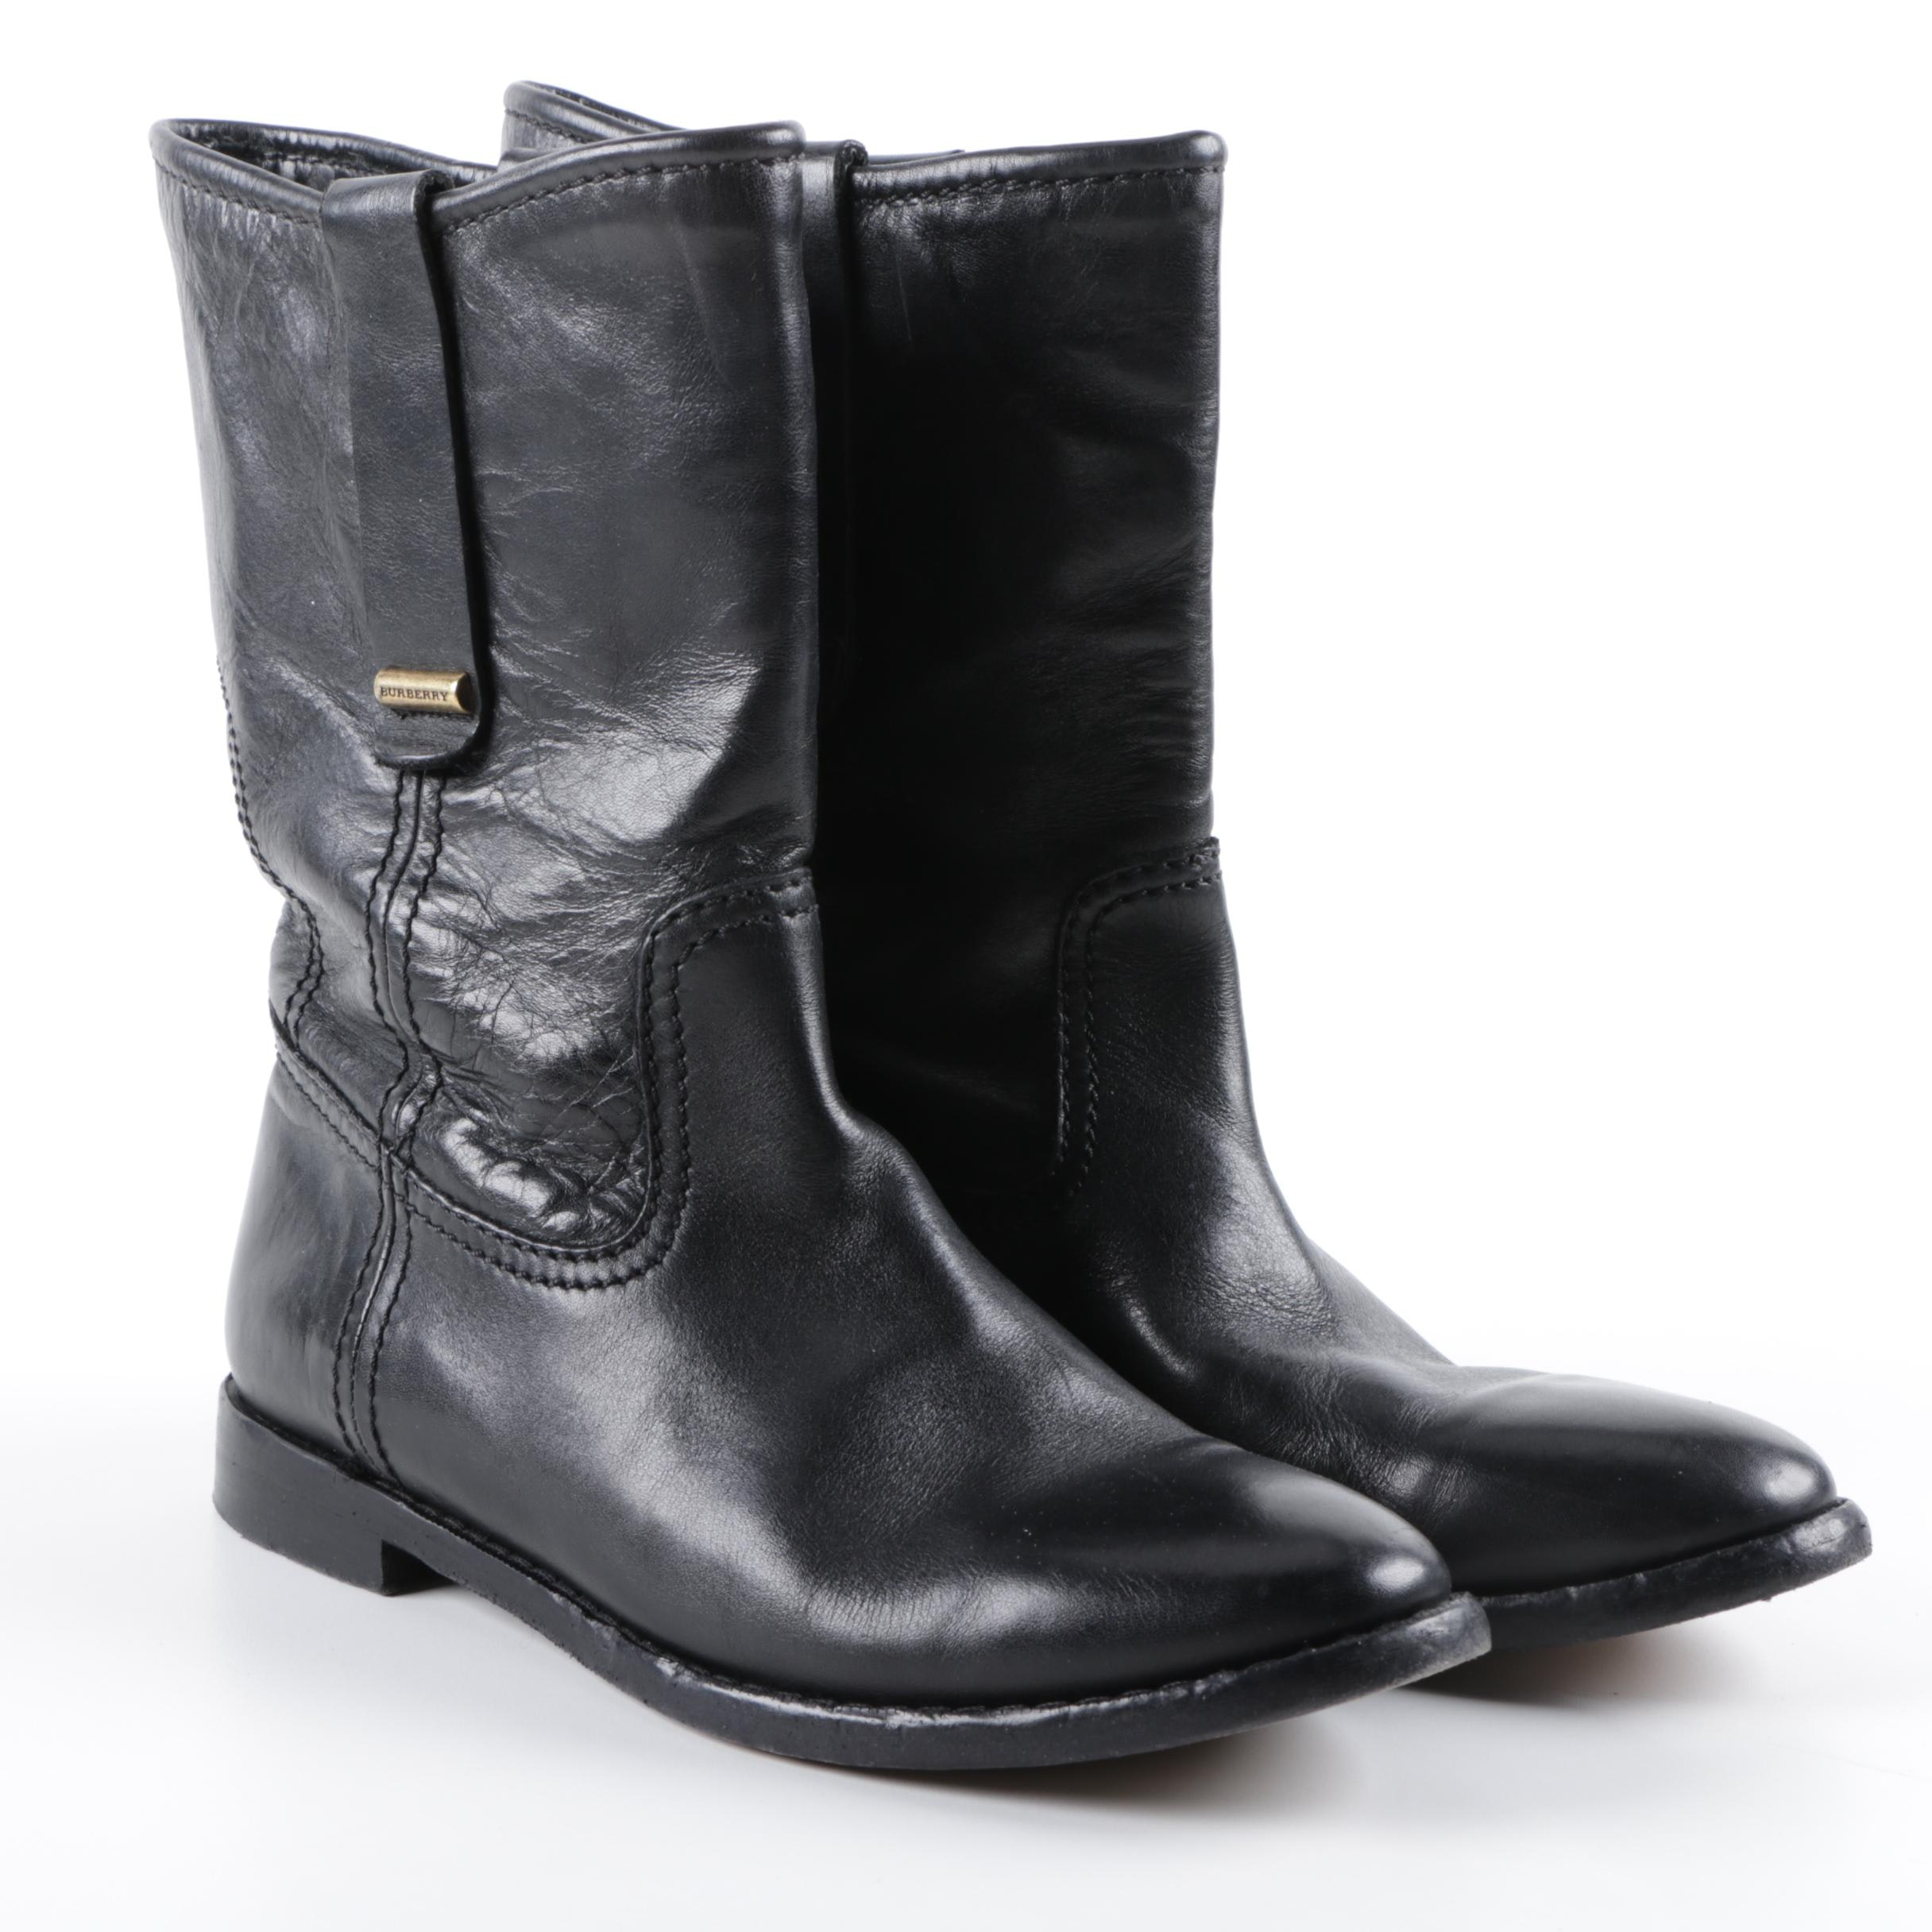 Women's Burberry Black Leather Boots